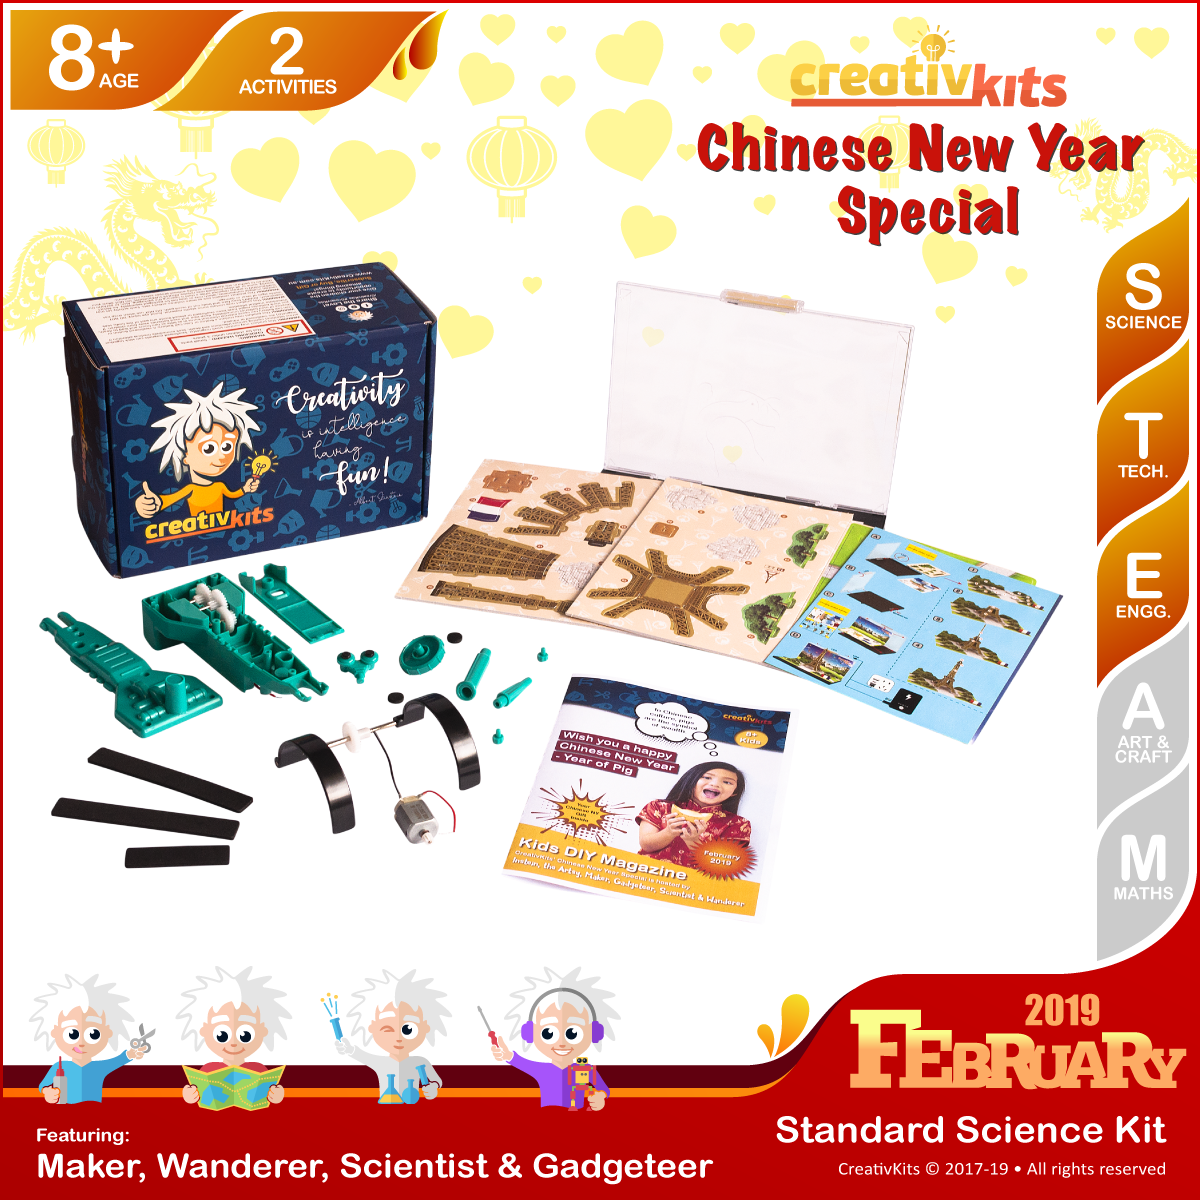 February Standard Science & Tech. Kit • Age 8 plus • DIY Crazy Robot and 3D Jigsaw Puzzle with LED